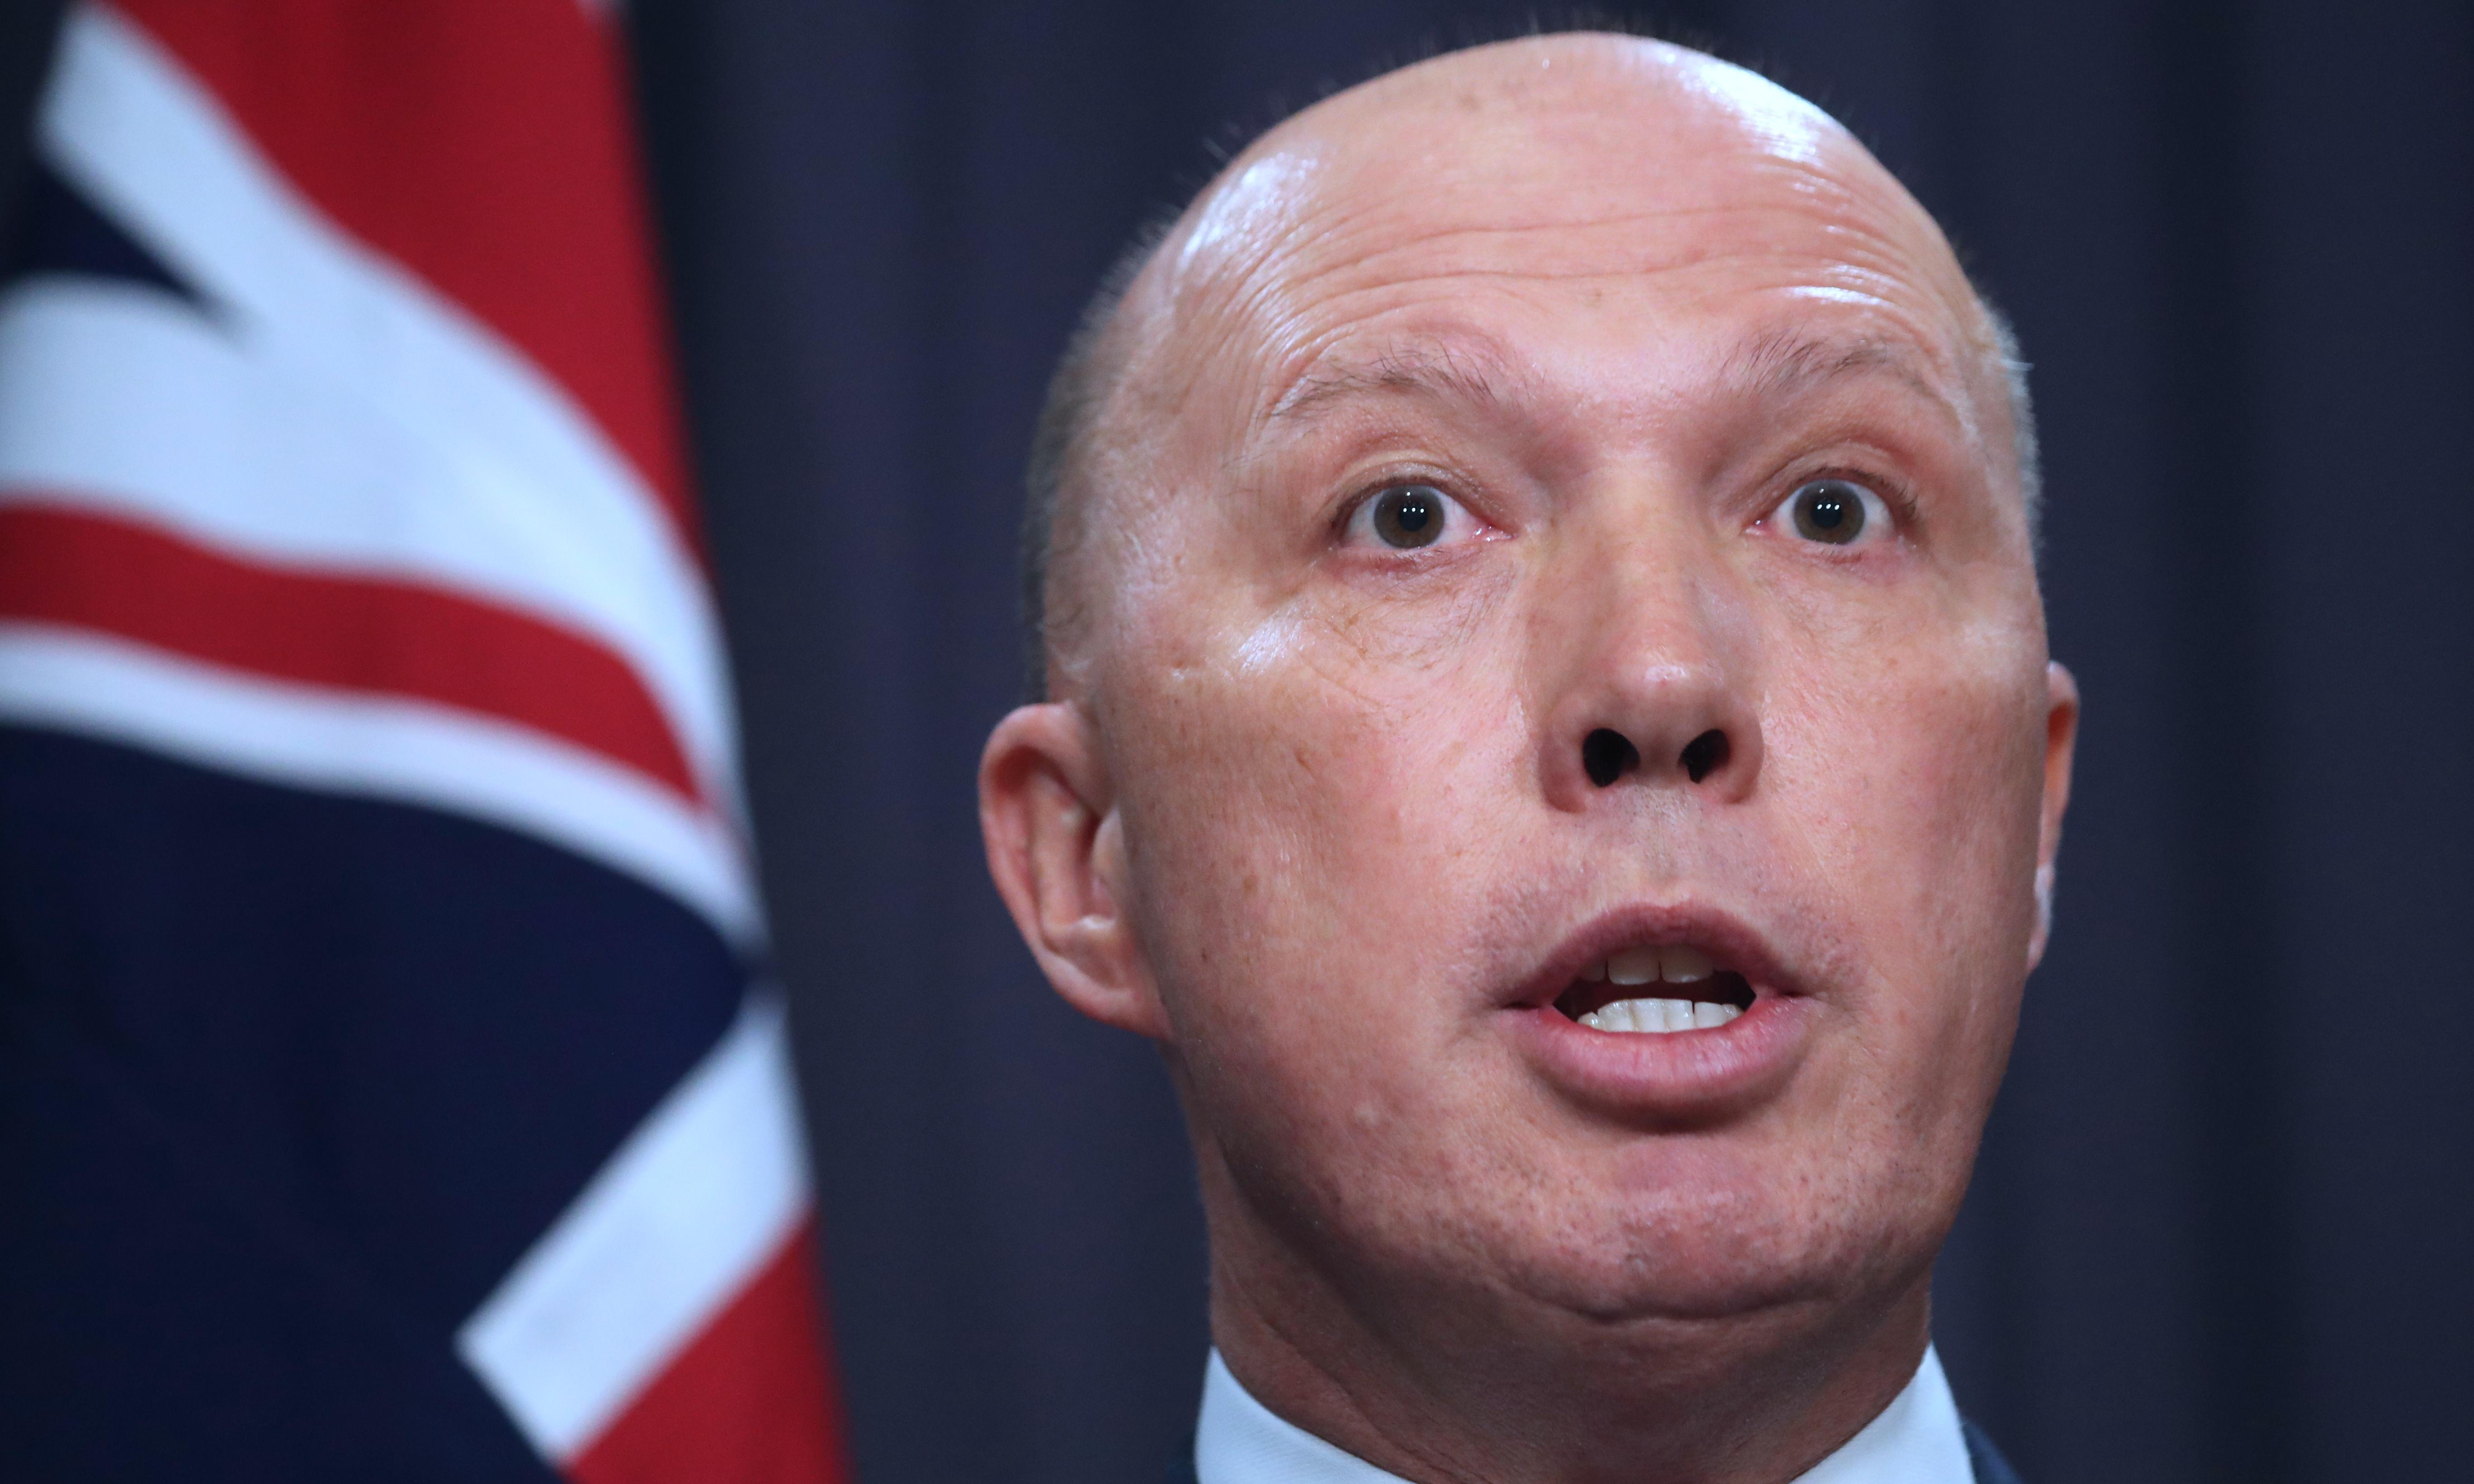 Dutton uses medevac law to refuse transfer despite claiming it could not be done